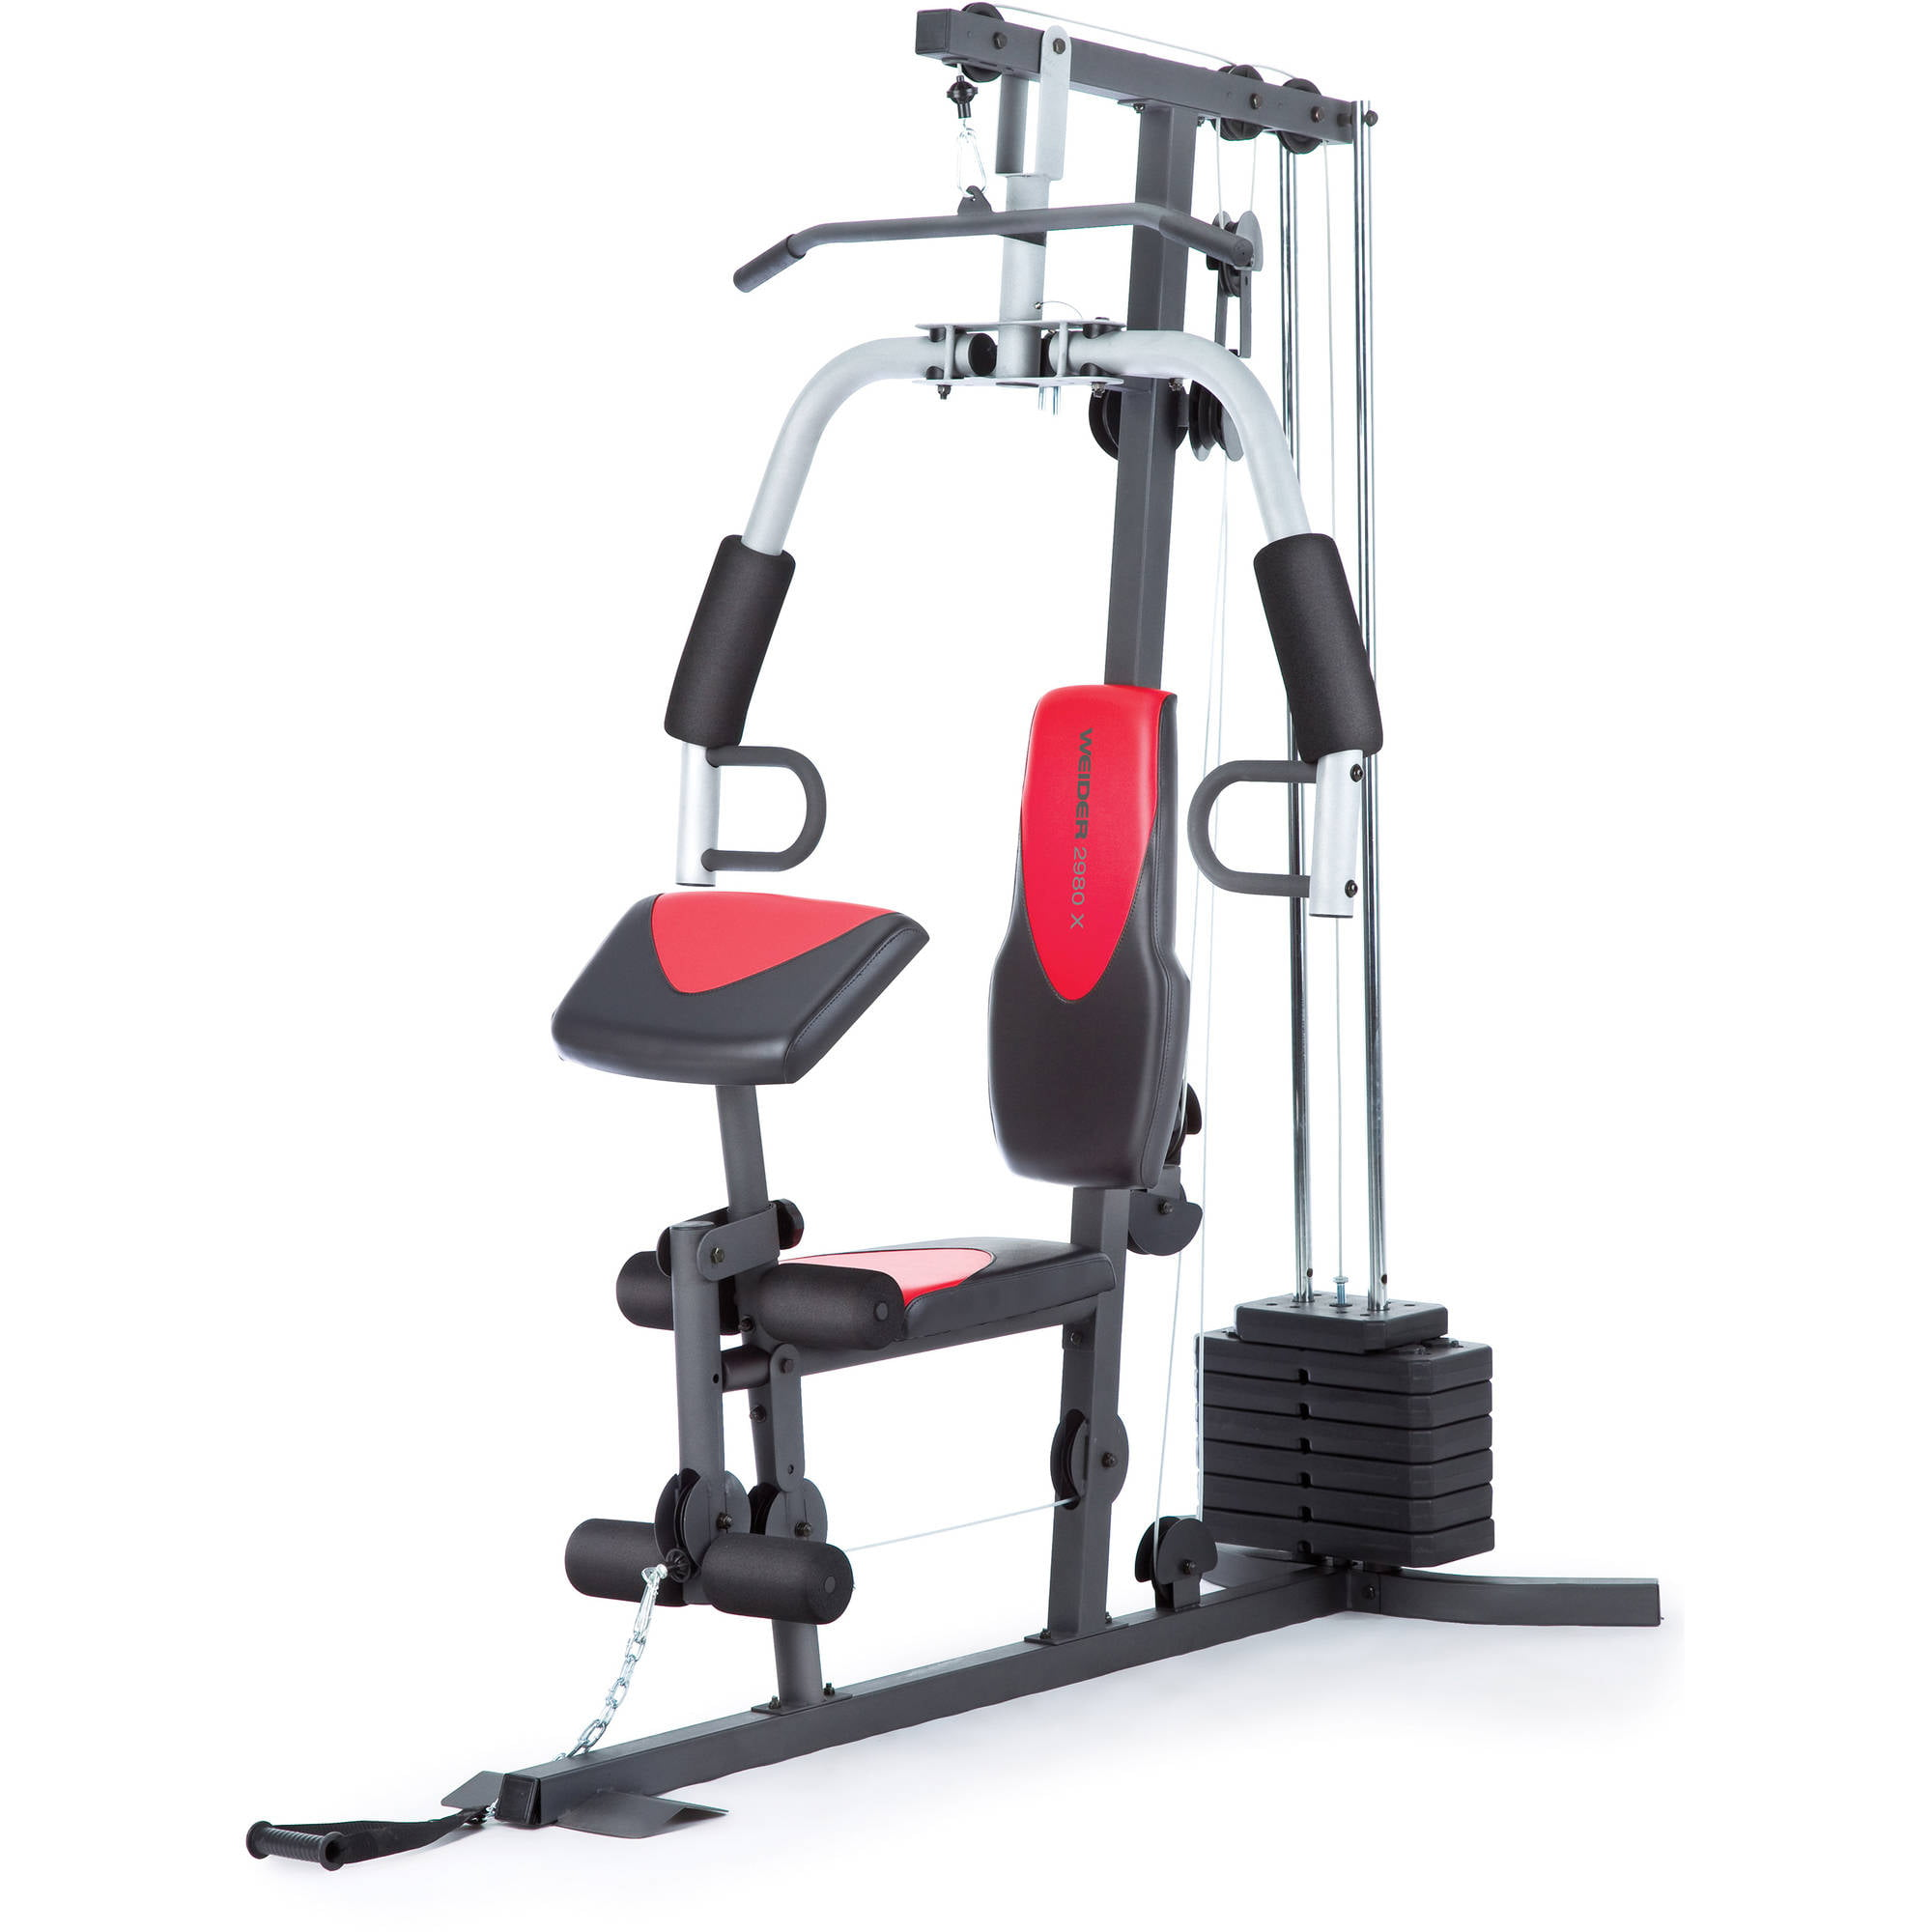 Weider  Home Gym With  Lbs Of Resistance Walmartcom - Home gym equipment for sale